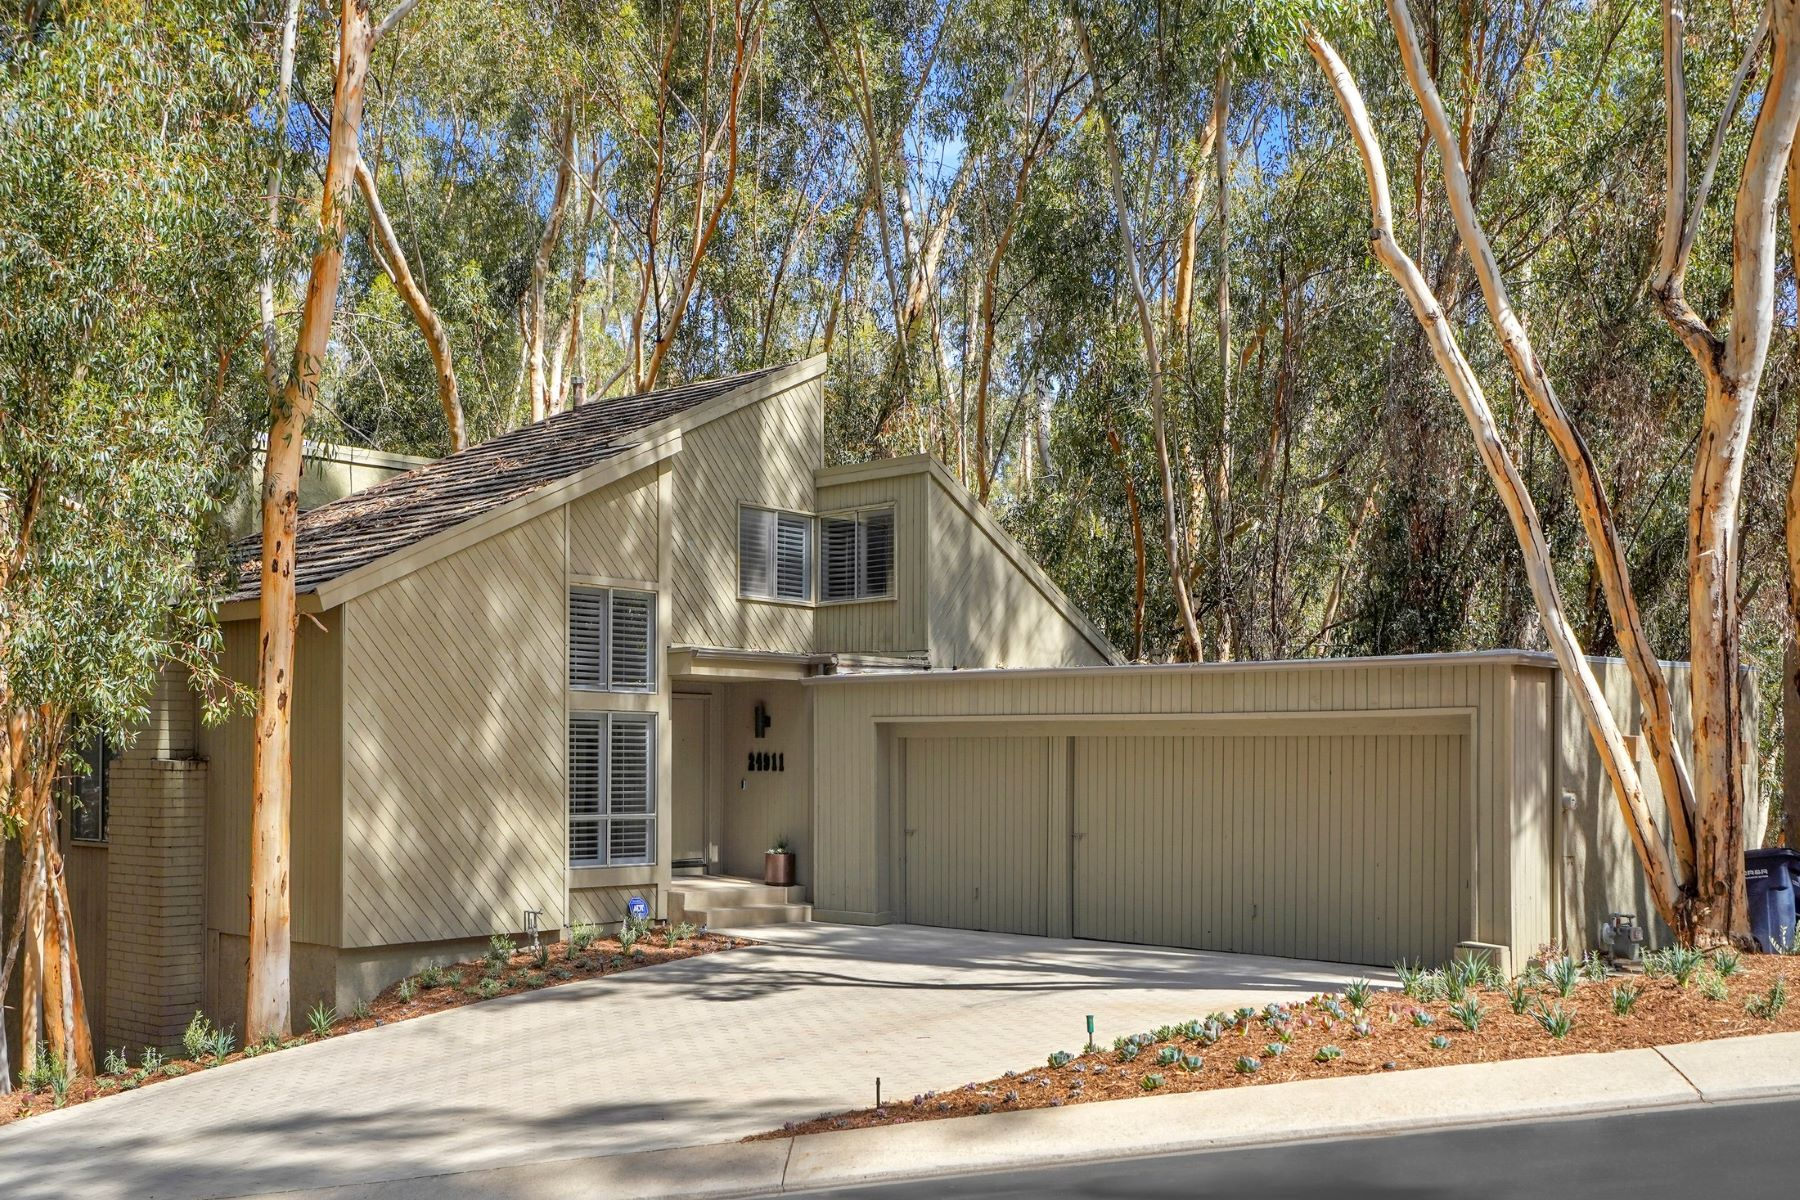 Single Family Homes for Sale at 24911 Singingwoods Drive, Lake Forest 24911 Singingwoods Drive Lake Forest, California 92630 United States